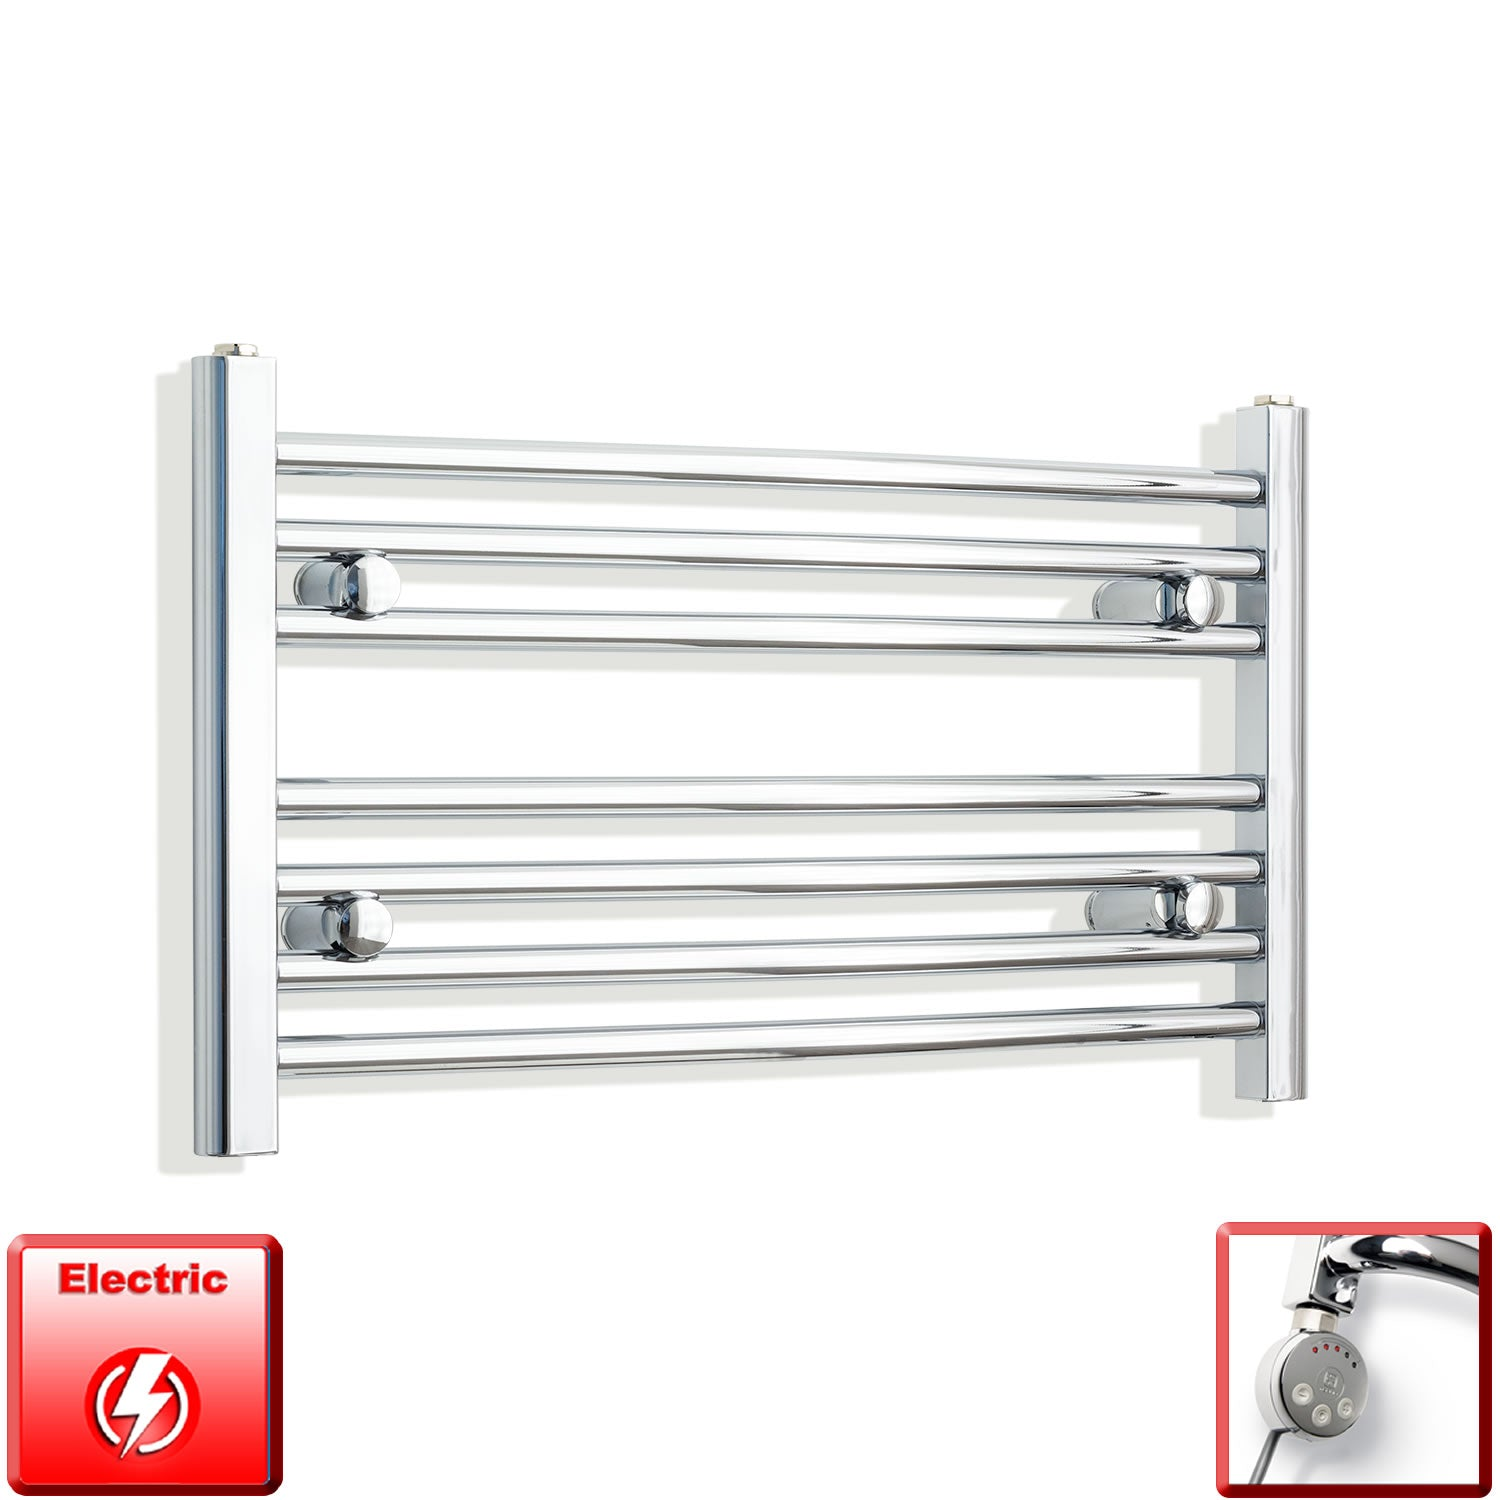 400mm High 700mm Wide Pre-Filled Electric Heated Towel Rail Radiator Curved or Straight Chrome